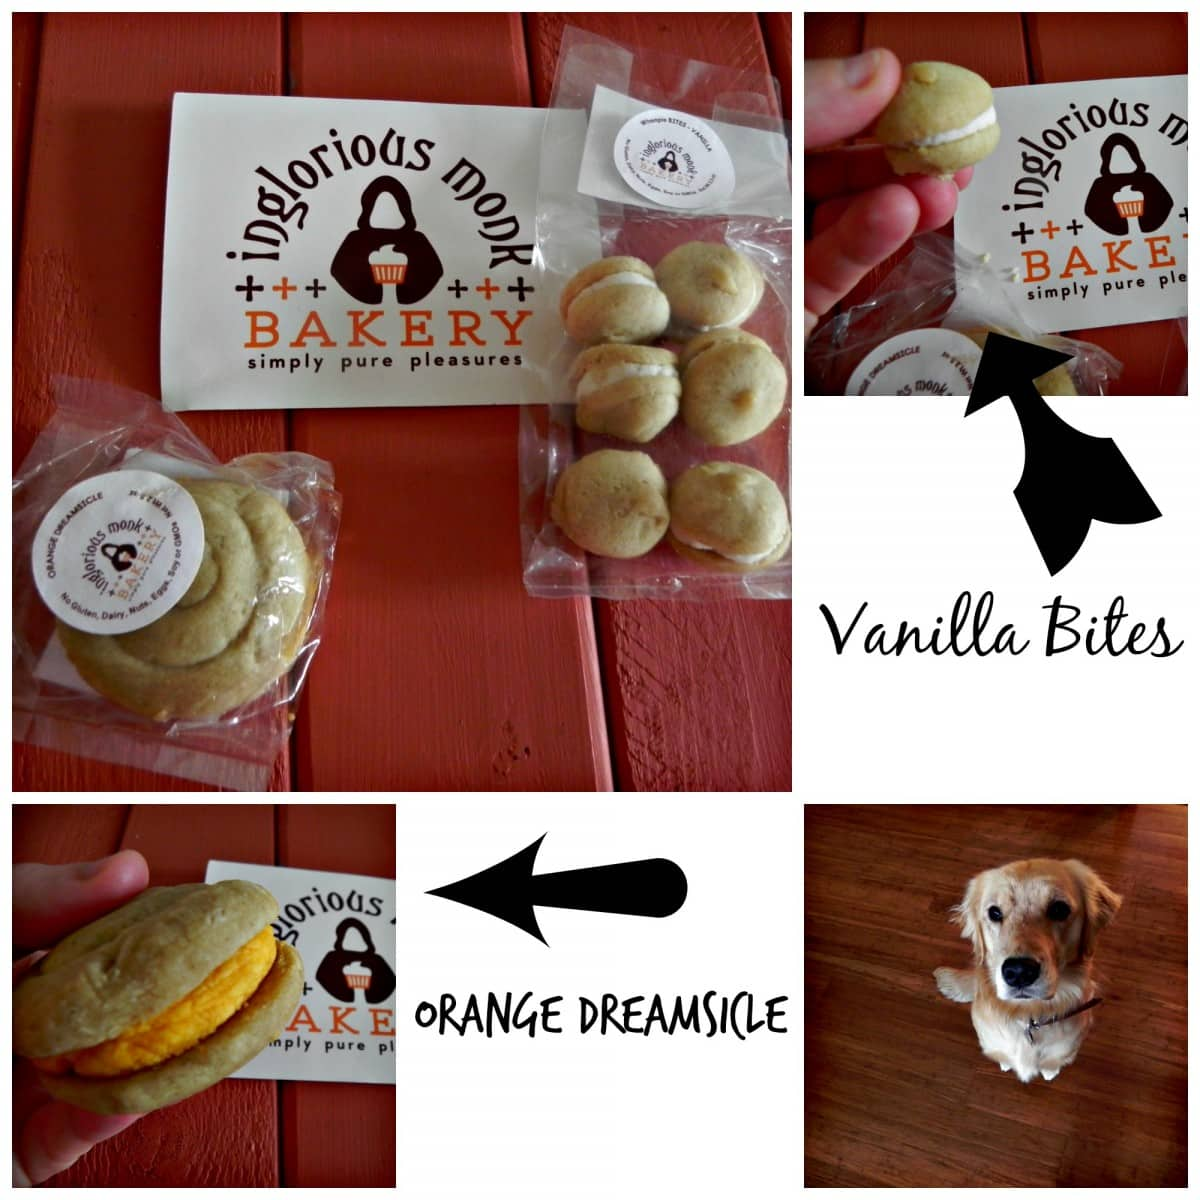 I Monk Bakery #review vegetarianmamma.com